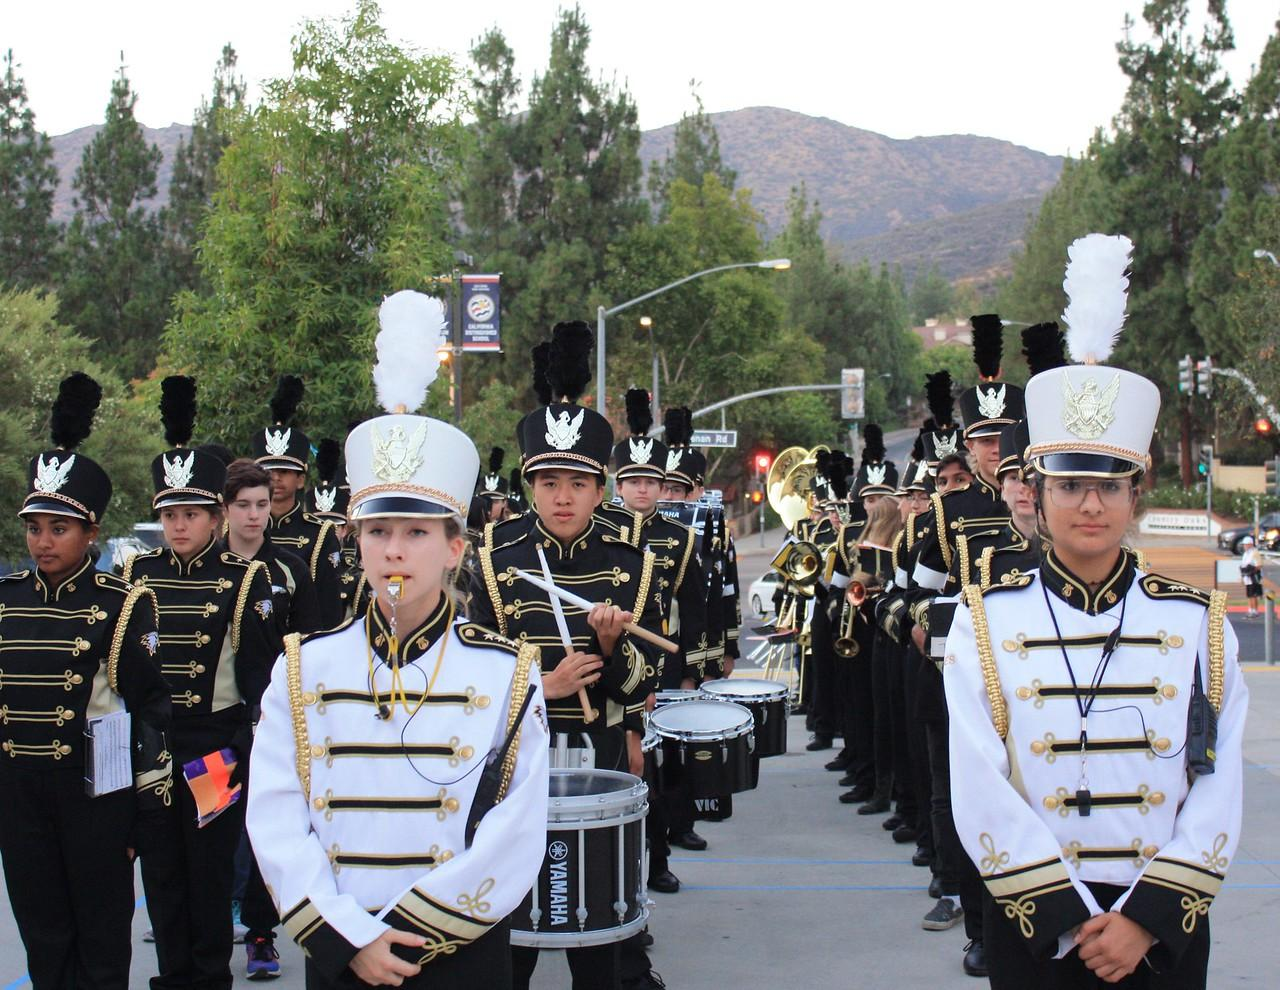 Students march in formation as part of Oak Park High School's marching band. Incoming freshmen joining marching band or cheer will be exempt from an otherwise mandatory physical education class (Meghana Mudunuri/Talon).